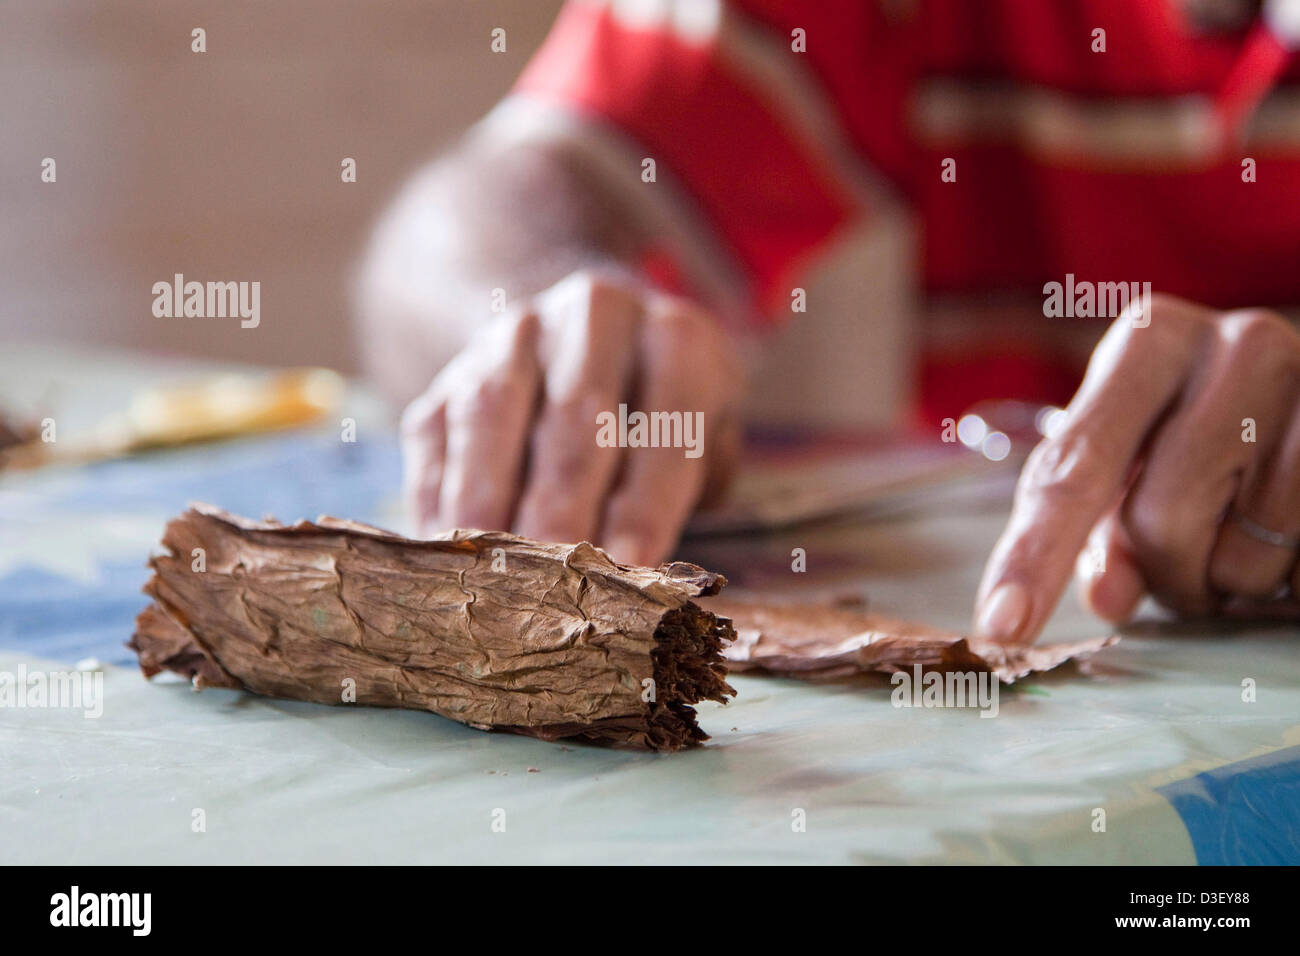 Cigar maker making a hand rolled cuban cigar from a bundle of dried tobacco leaves, Viñales, Cuba, Caribbean - Stock Image